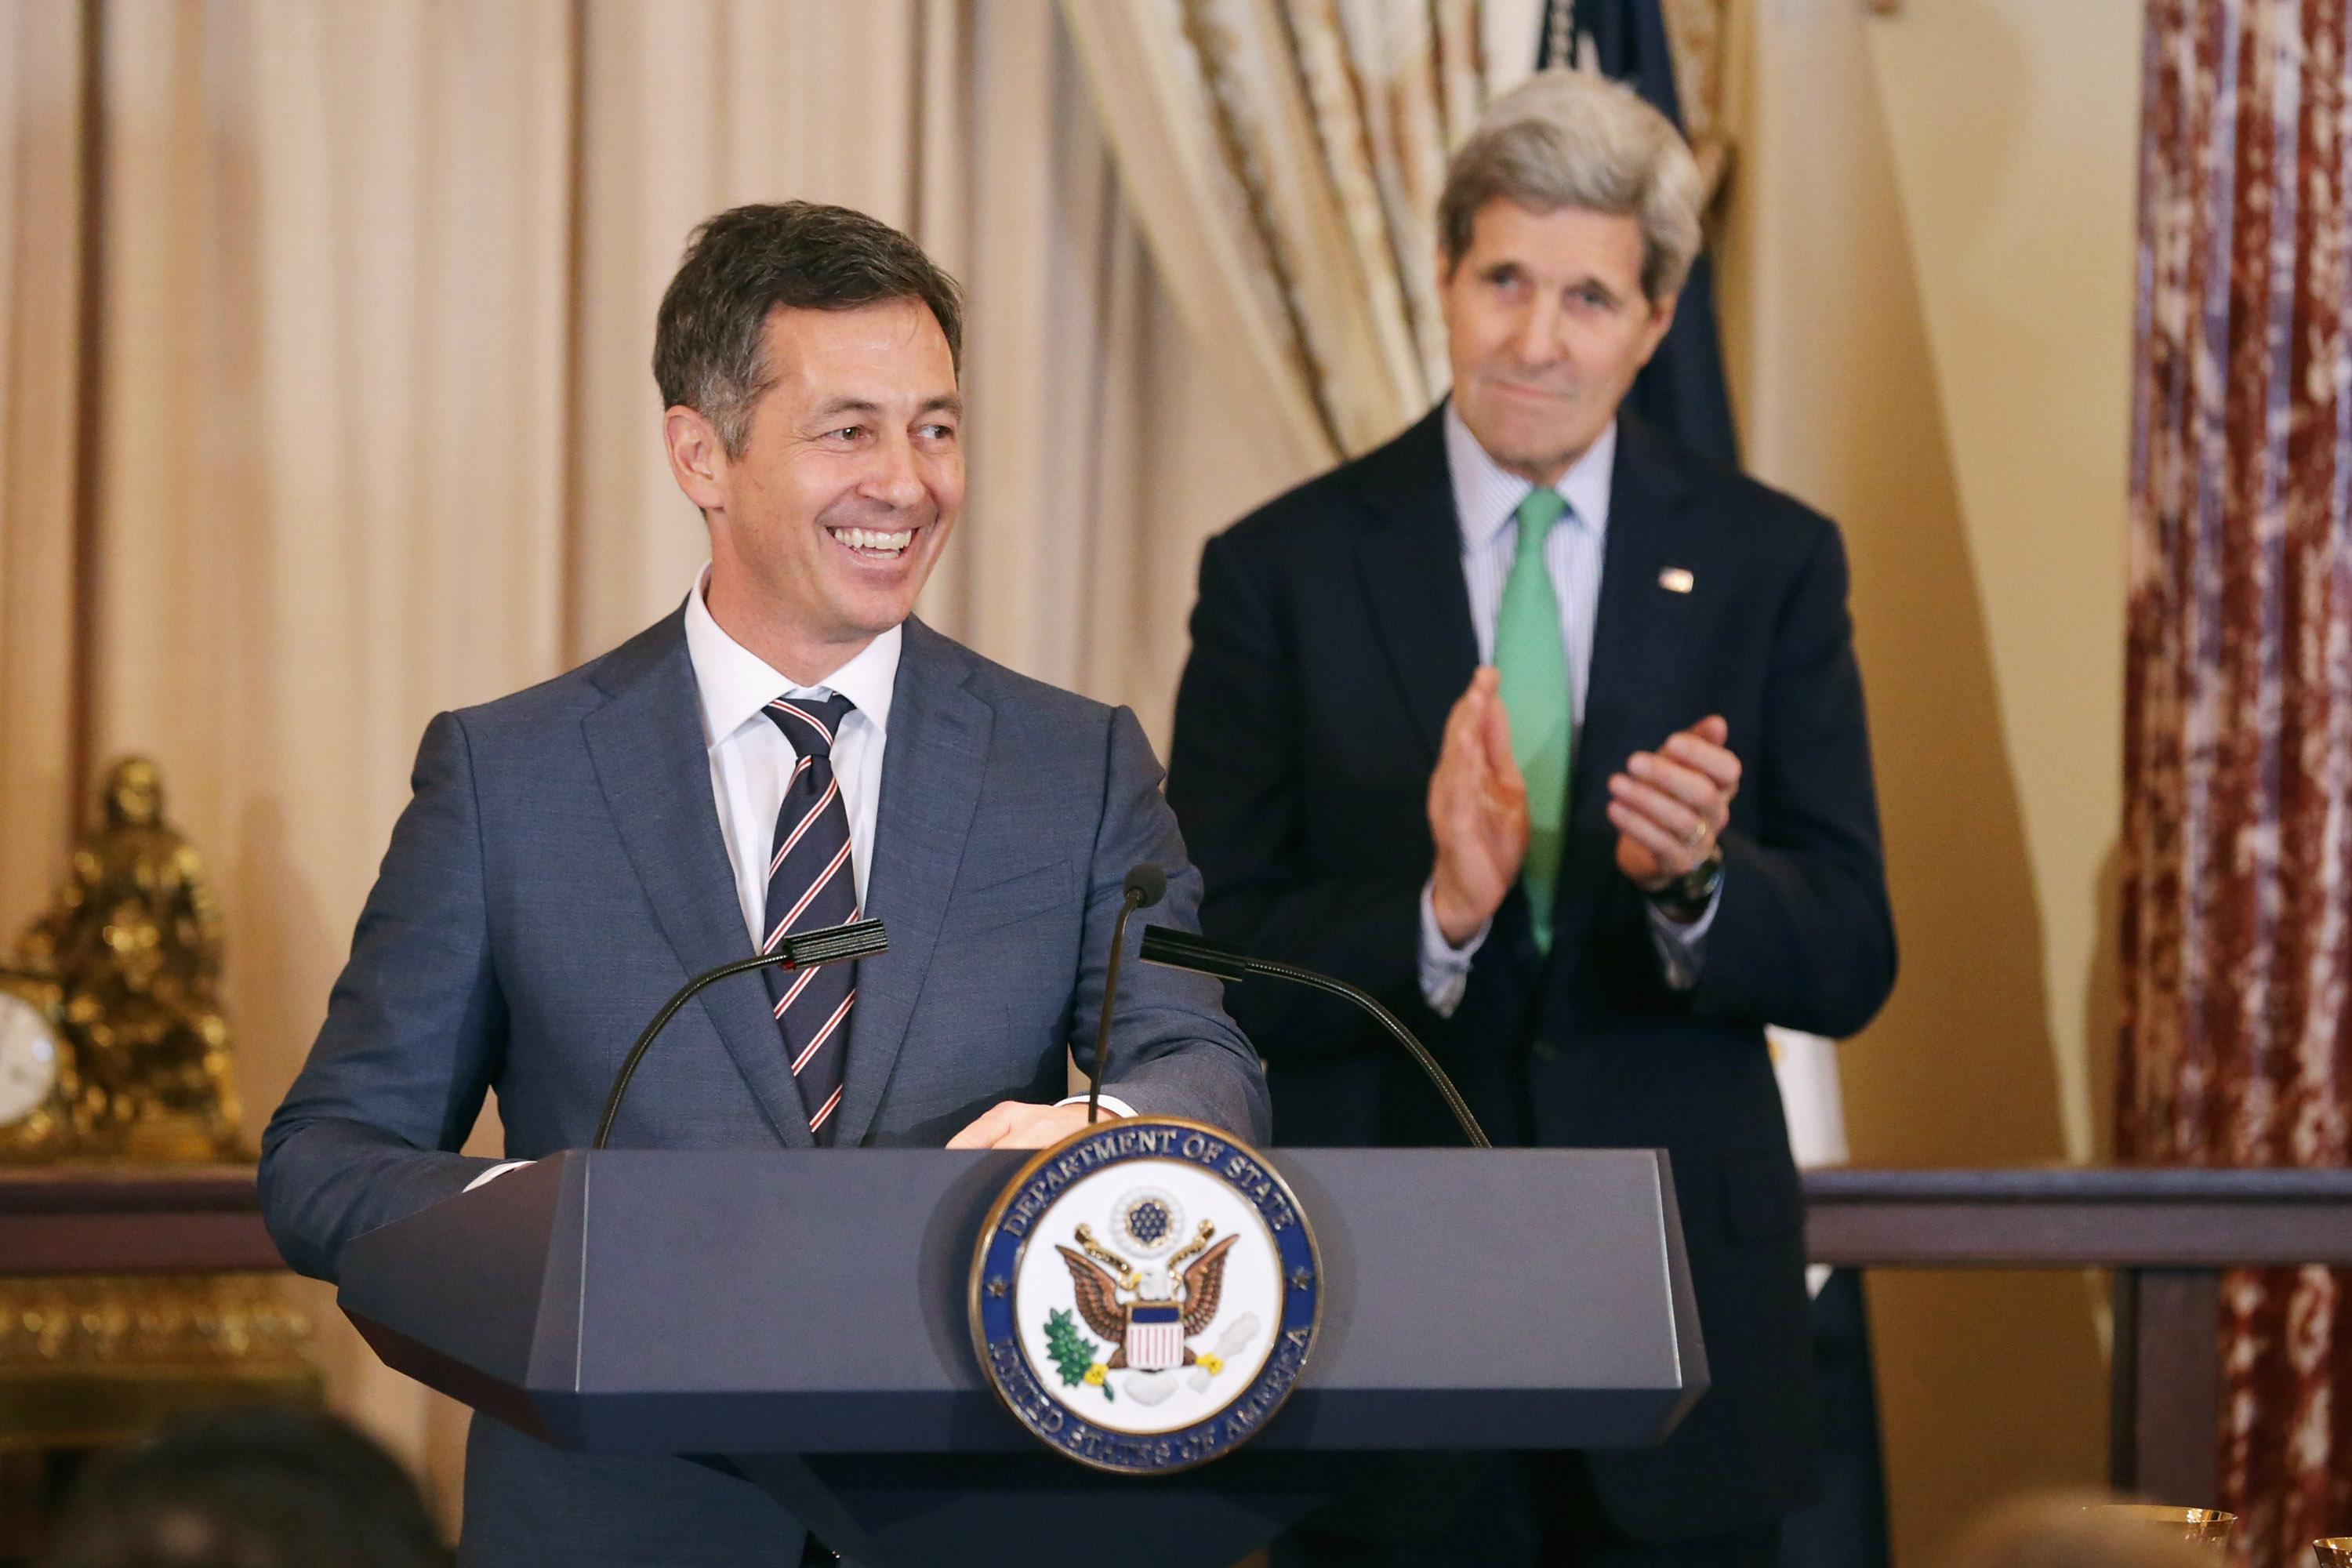 Trump Keeps Obama's Top Gay Rights Envoy at State Department